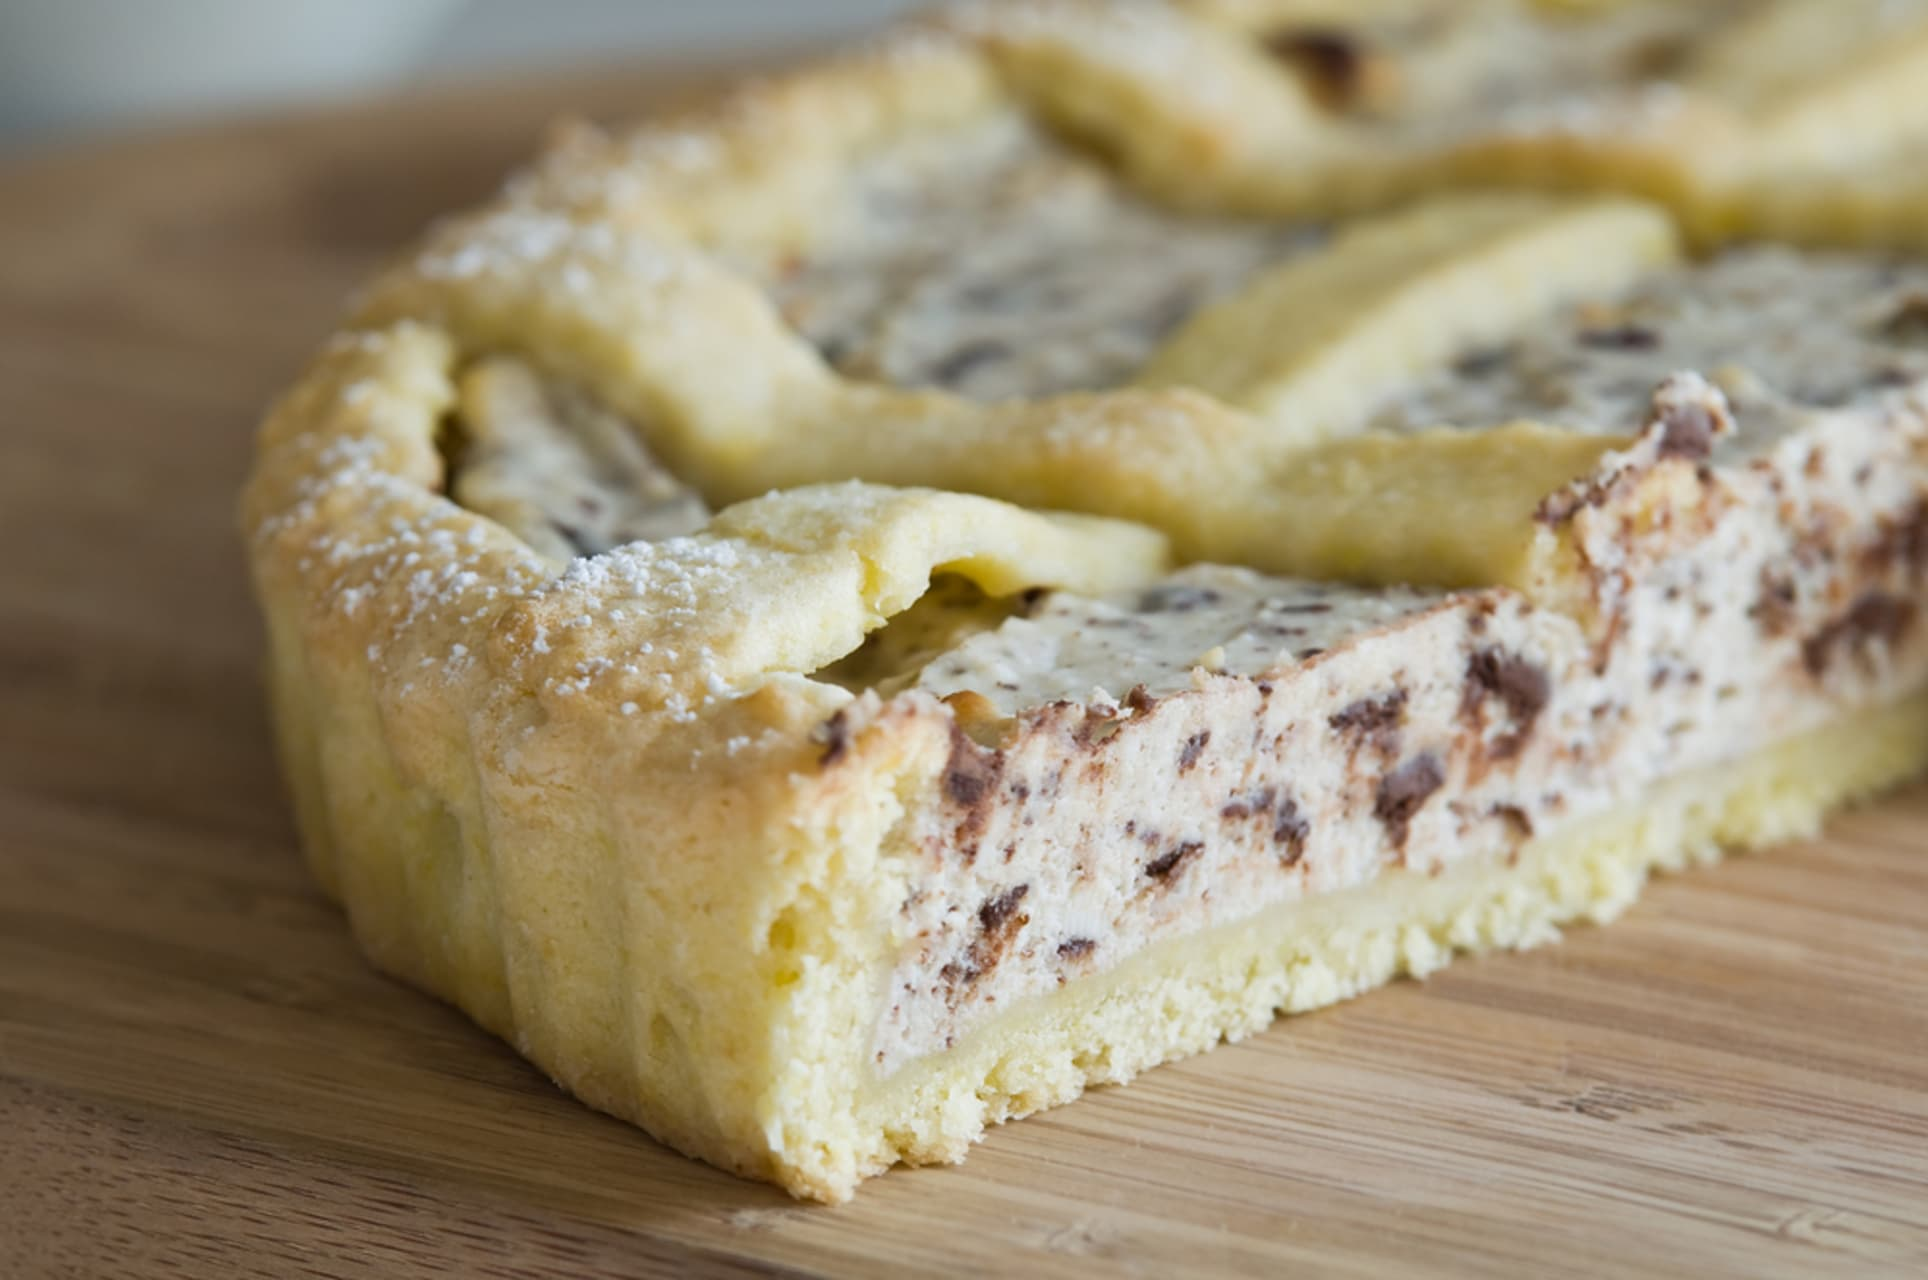 Rome - Ricotta crostata pie with chocolate chips